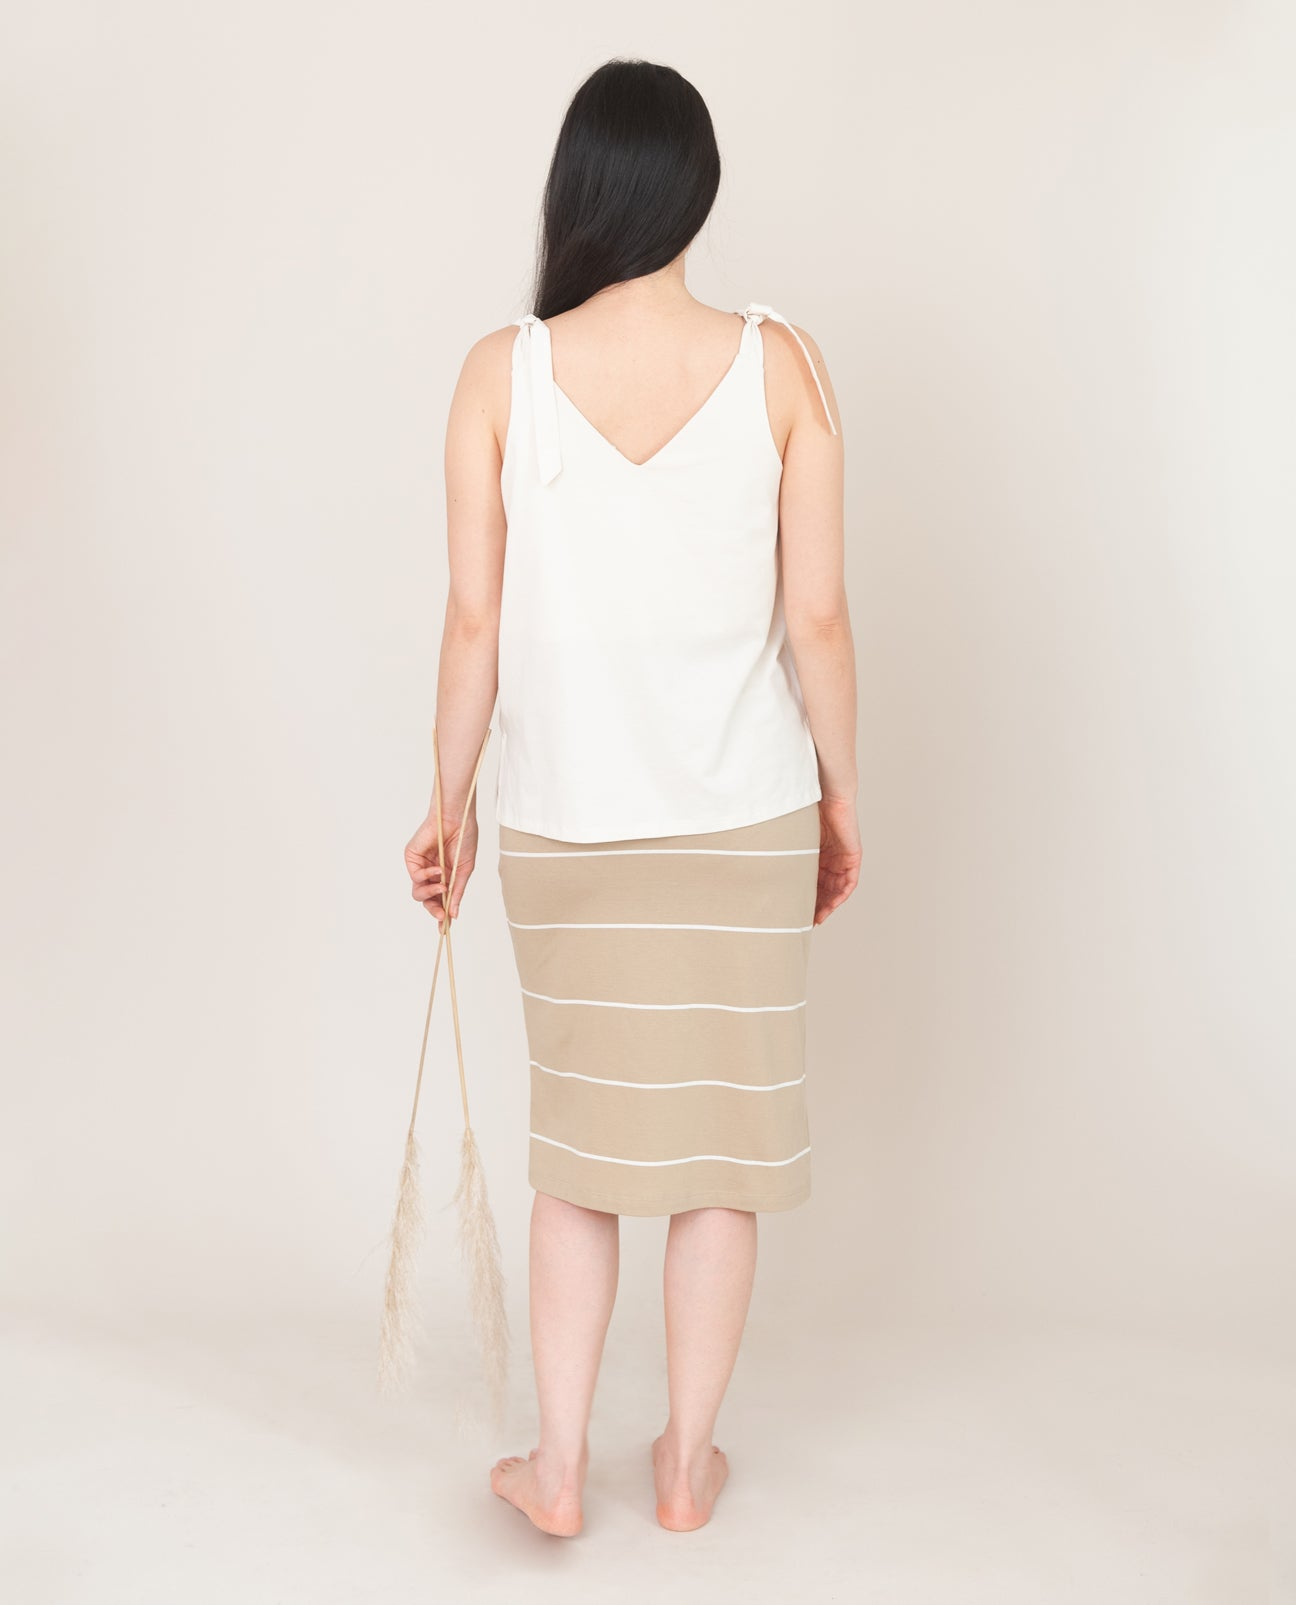 ADDISON Organic Cotton Skirt in Sand And Ecru